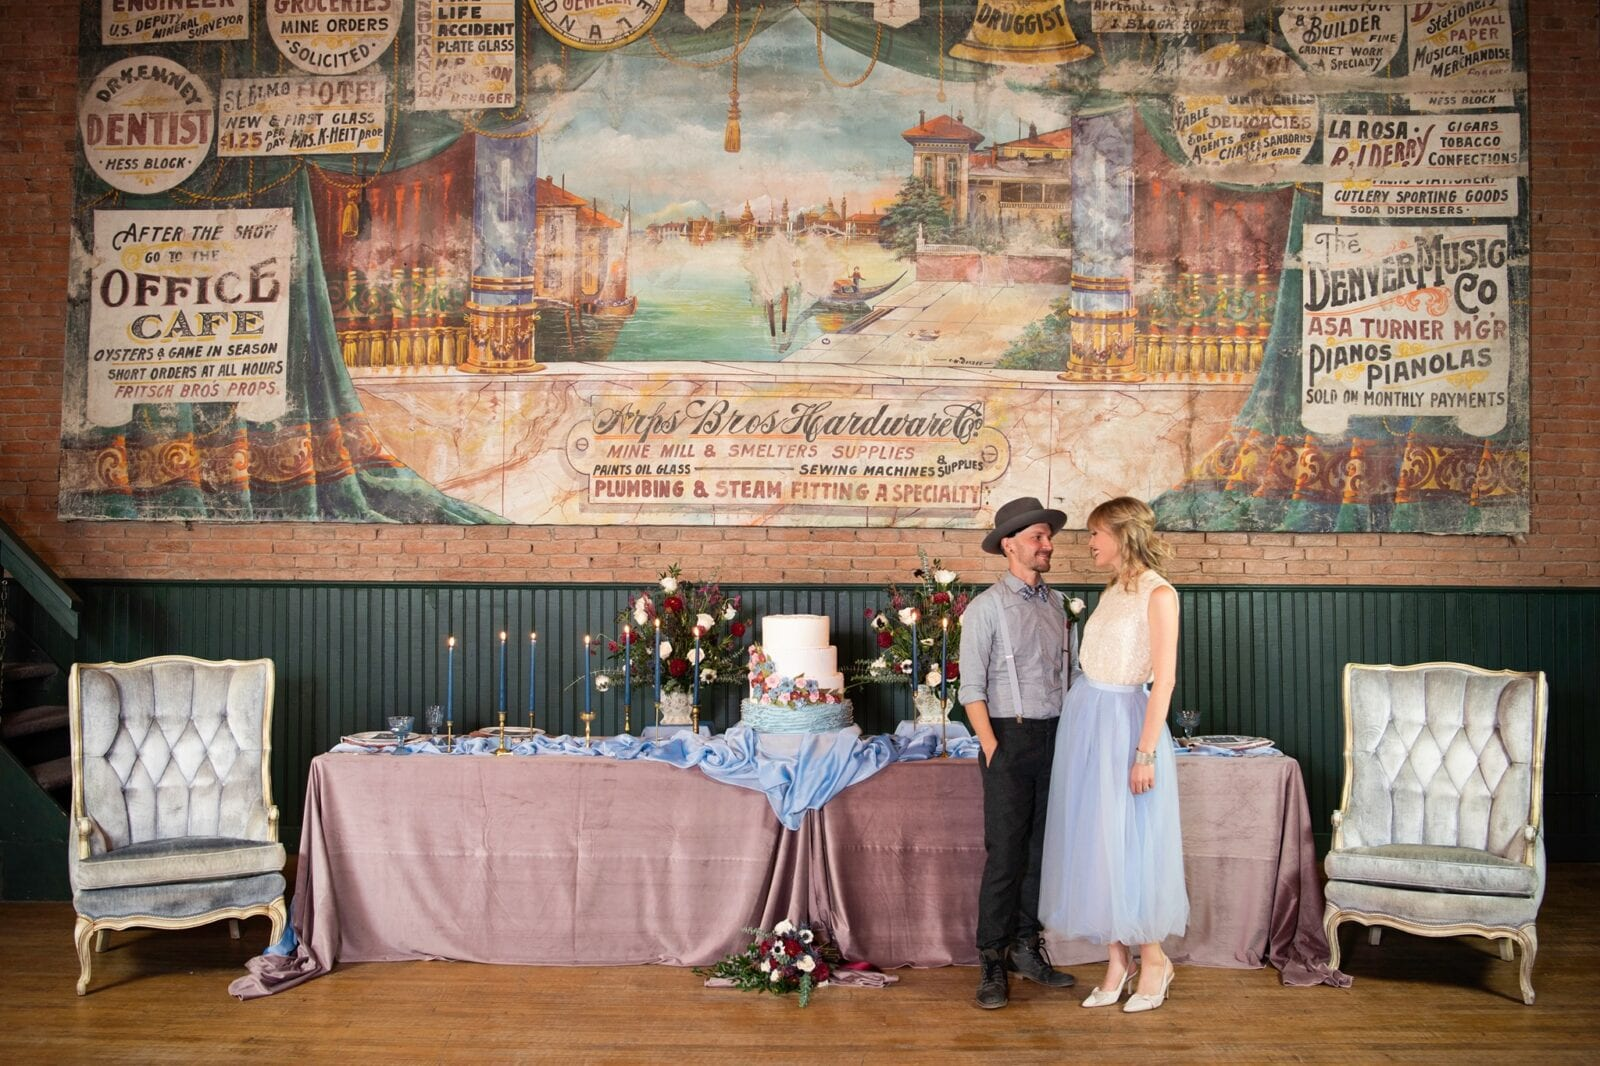 Image of a couple having their wedding at Wright's Opera House in Ouray, Colorado